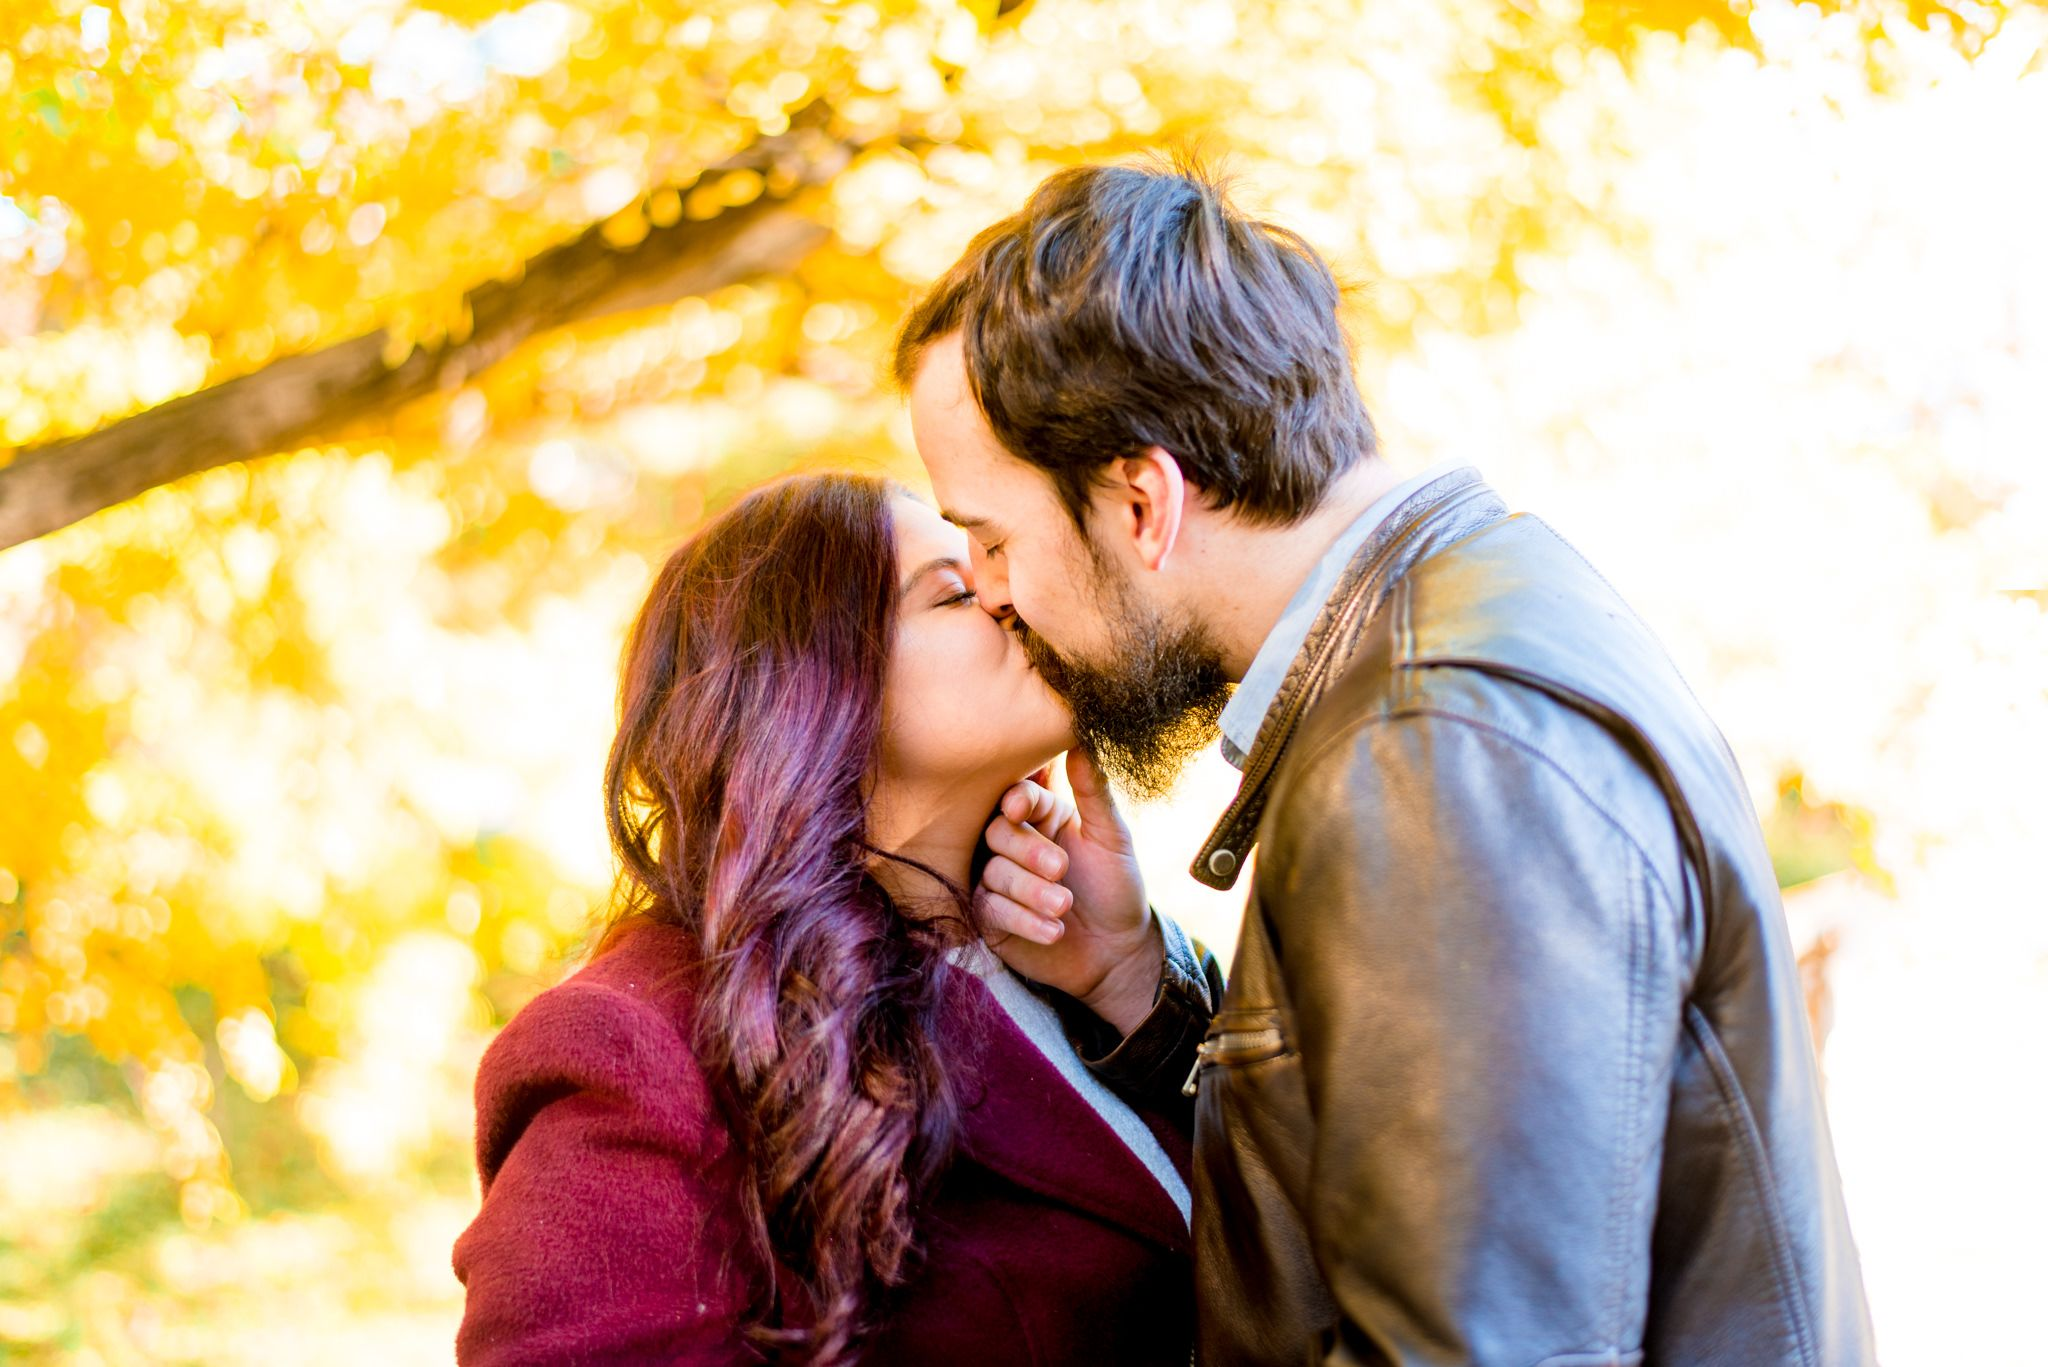 brown hair man kissing red hair woman in red coat under yellow trees in Central Park in the fall at sunrise